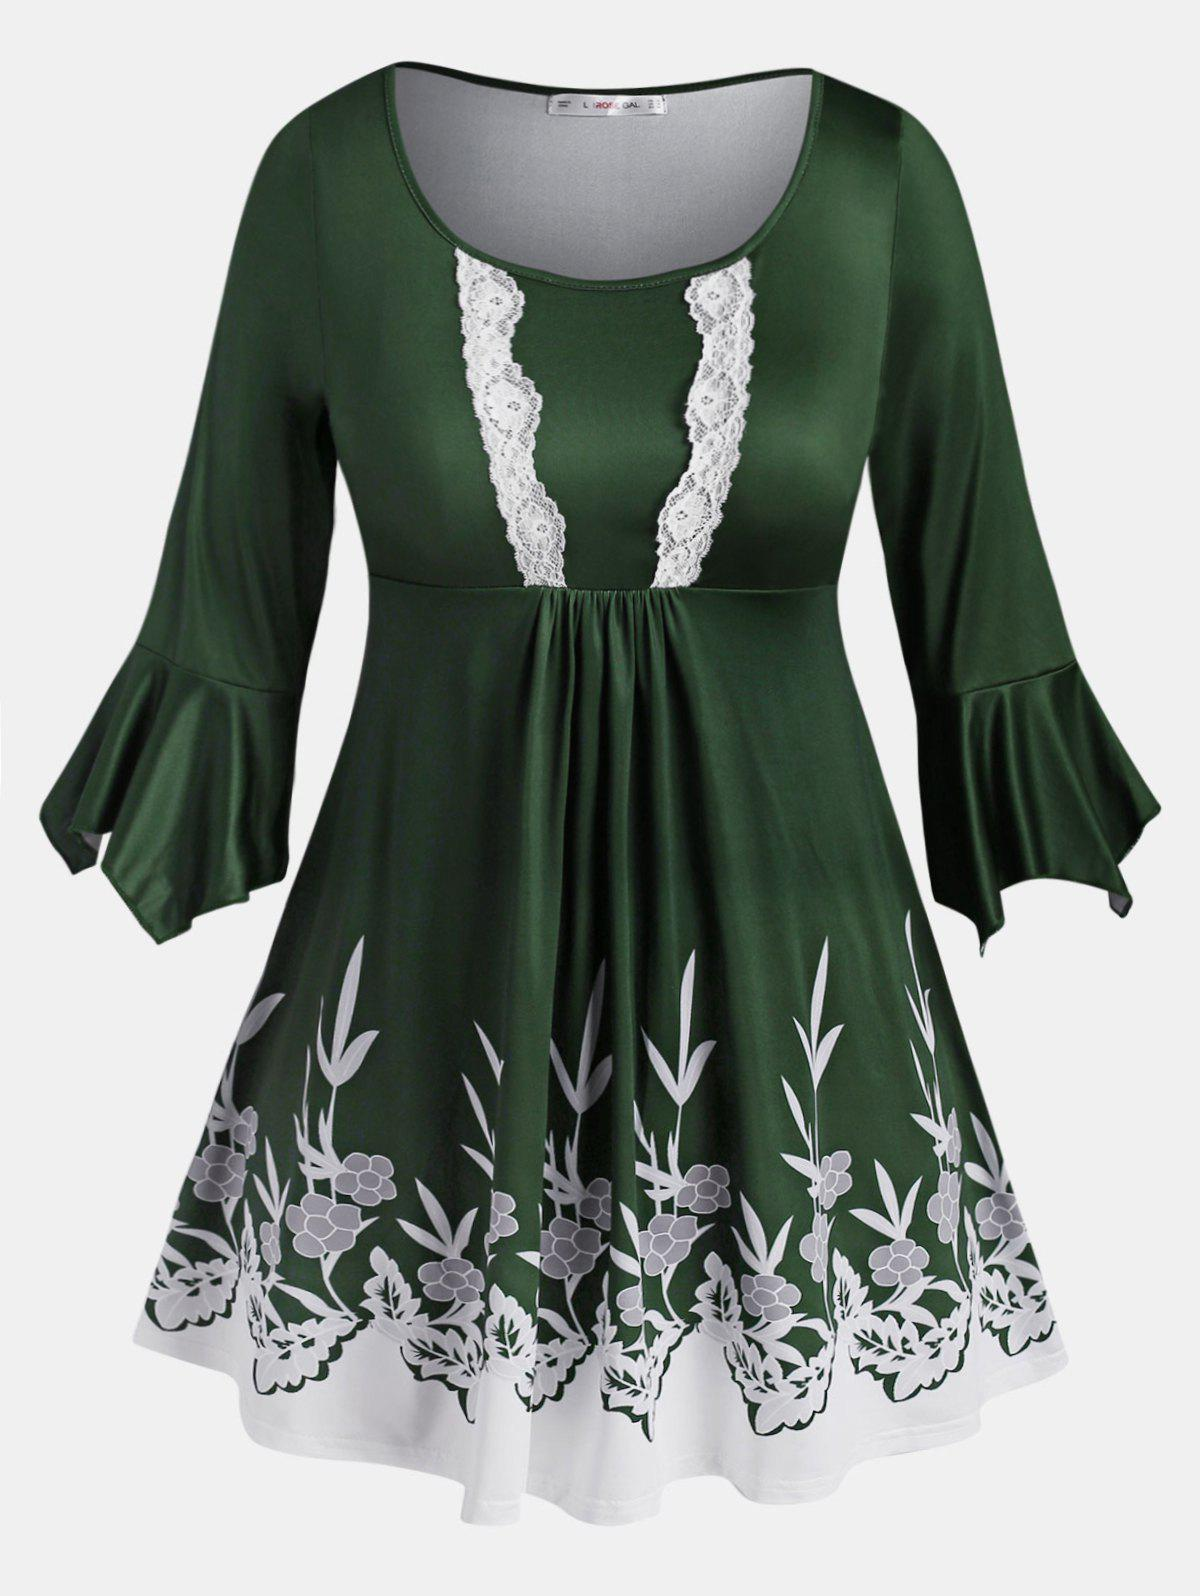 Lace Trim Leaves Floral Flare Sleeve Plus Size Blouse - DEEP GREEN 4X